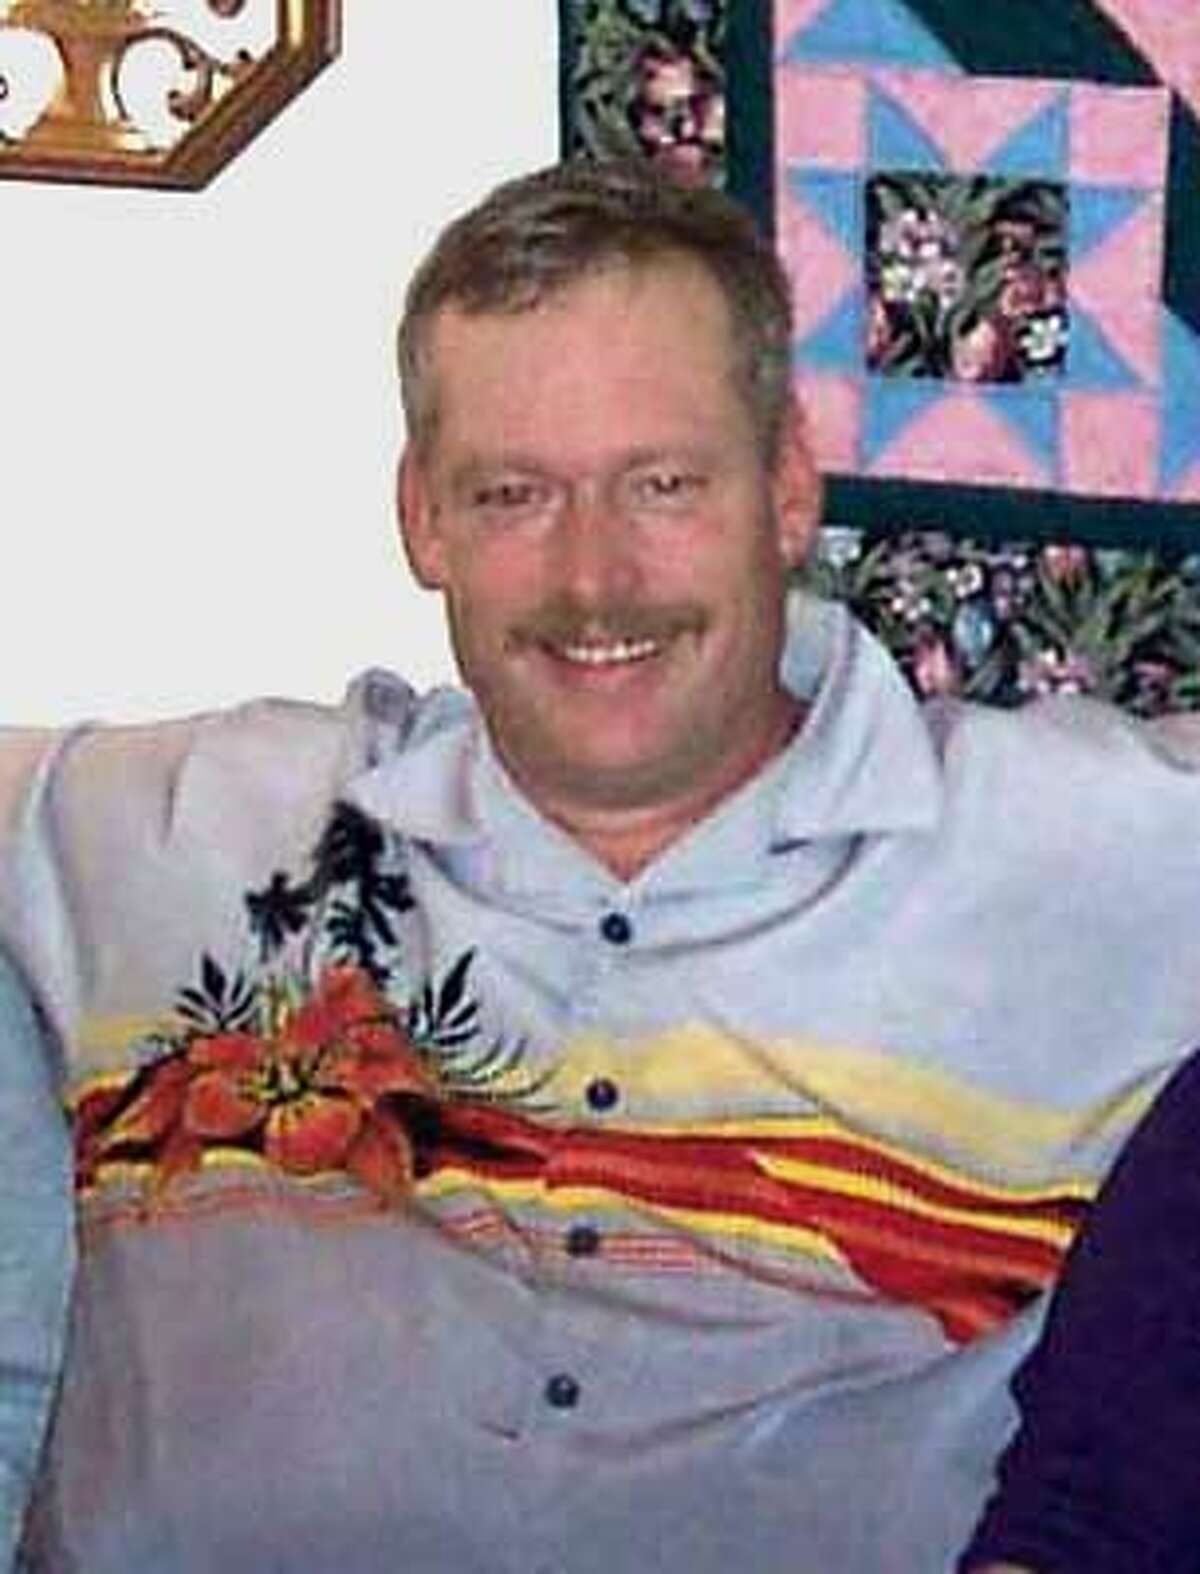 Scott Lofgren Ran on: 12-20-2005 Scott Lofgren, 43, was struck and killed by a car while putting down flares on Interstate 80. Ran on: 12-20-2005 Scott Lofgren, 43, was struck and killed by a car while putting down flares on Interstate 80.